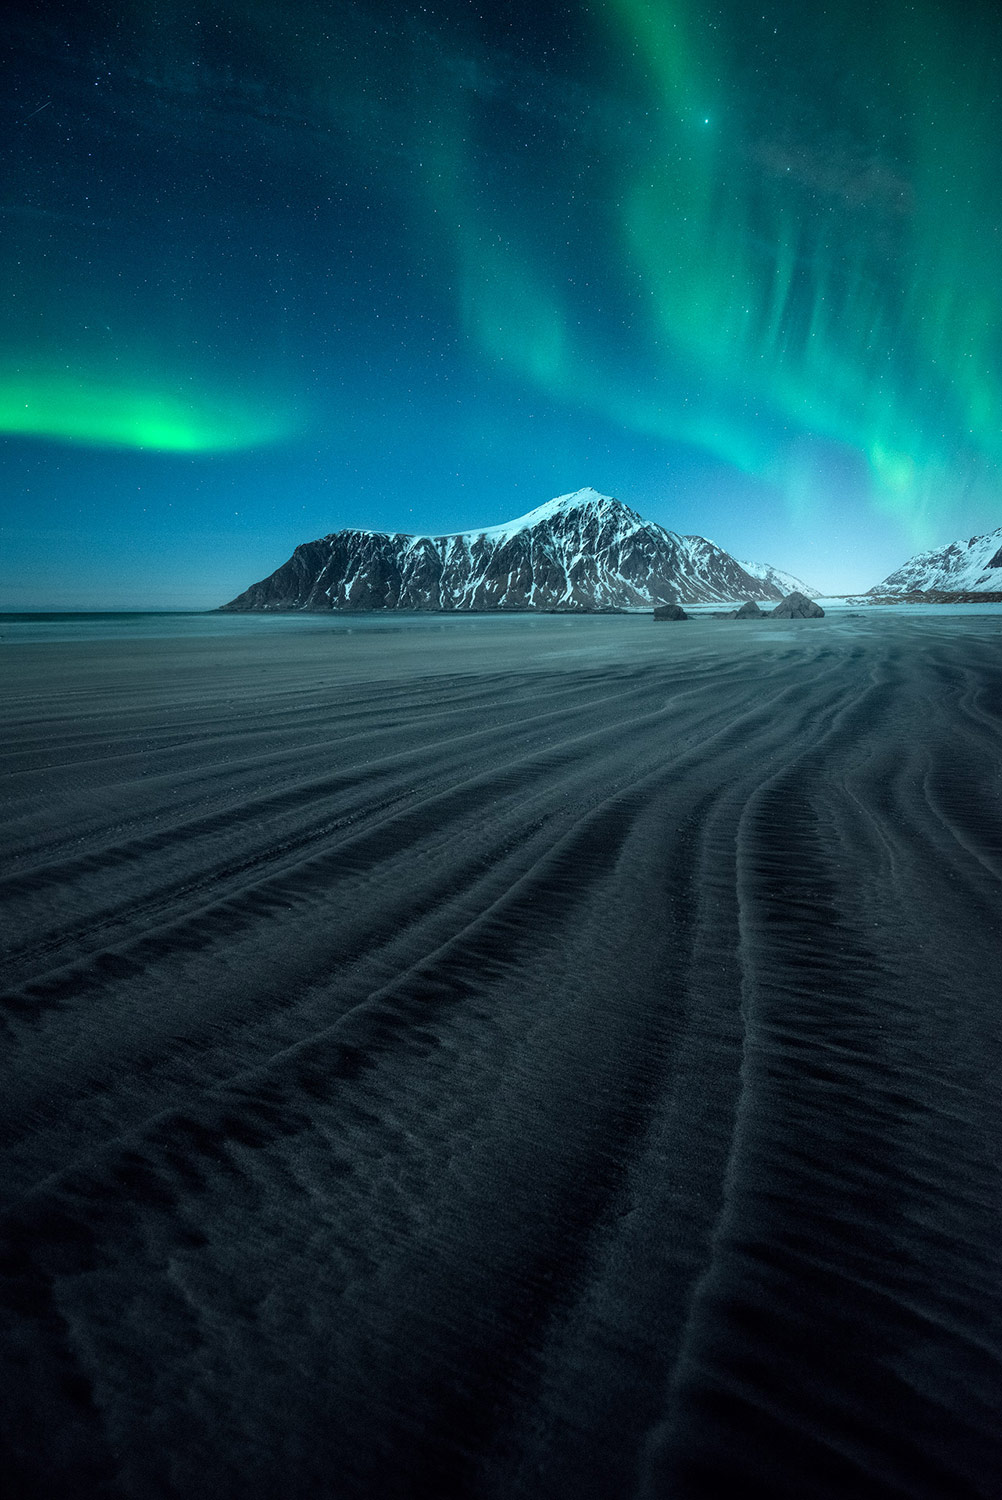 the northern lights over a mountain